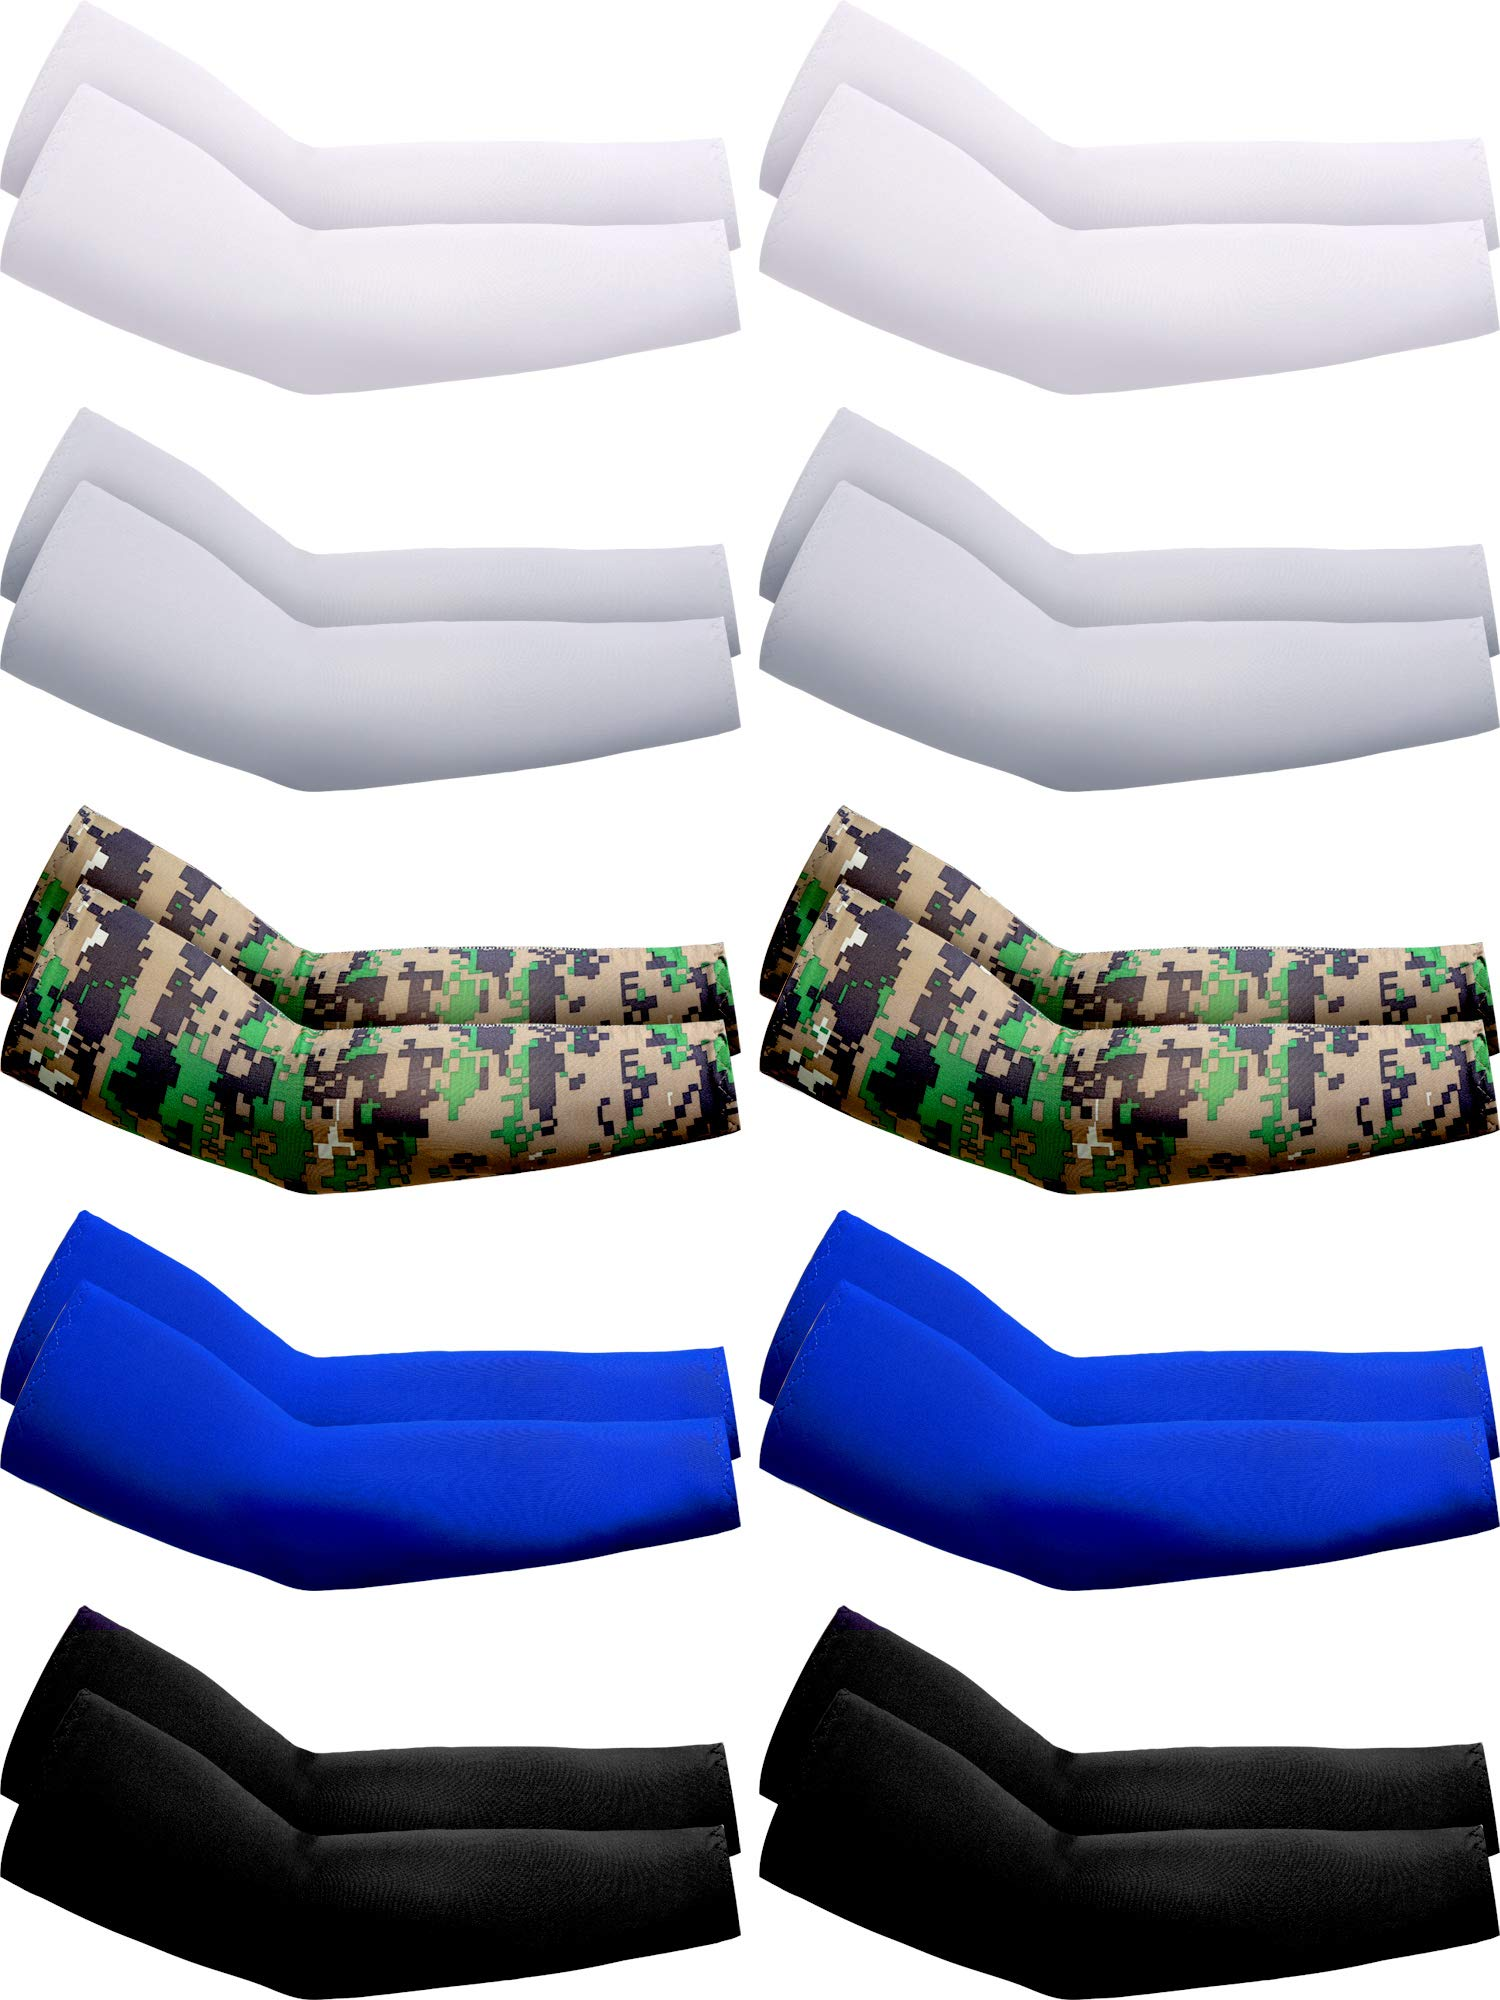 10 Pairs UV Protection Cooling Arm Sleeves Anti-Slip Ice Silk Arm Cover for Men (Color Set 1) by Boao